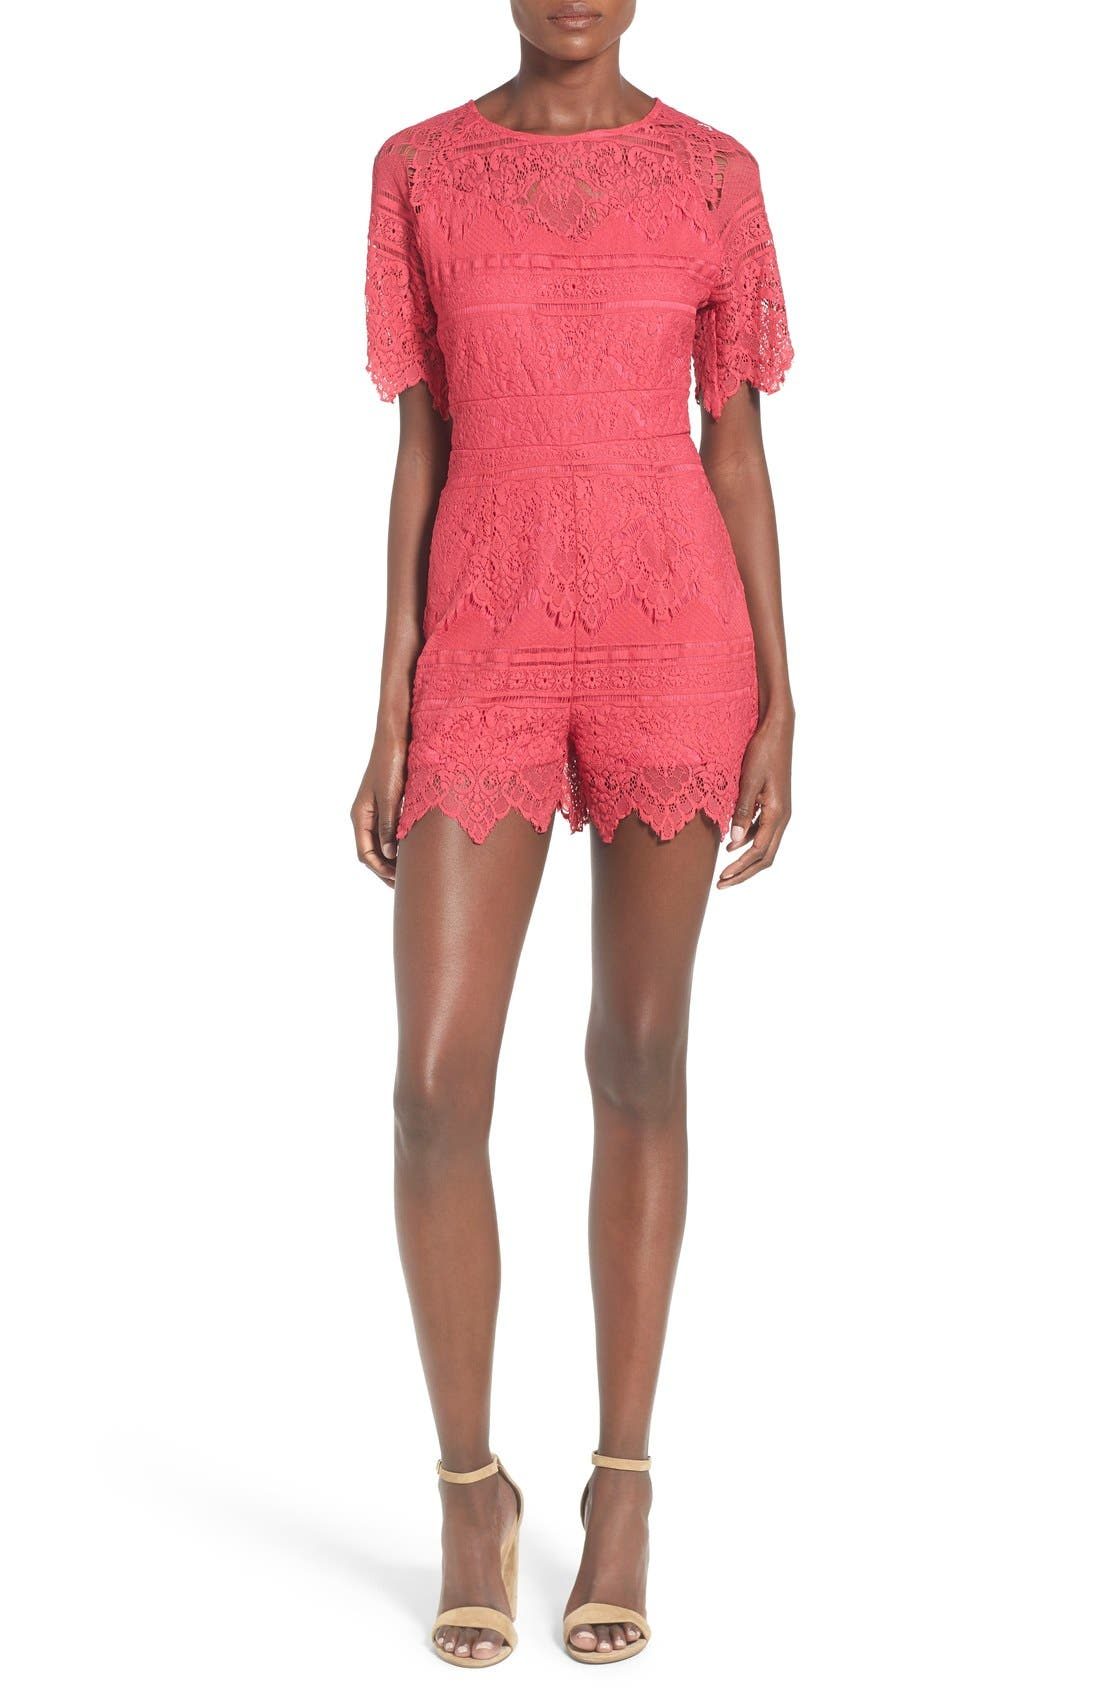 Alternate Image 1 Selected - Love, Fire Lace Romper